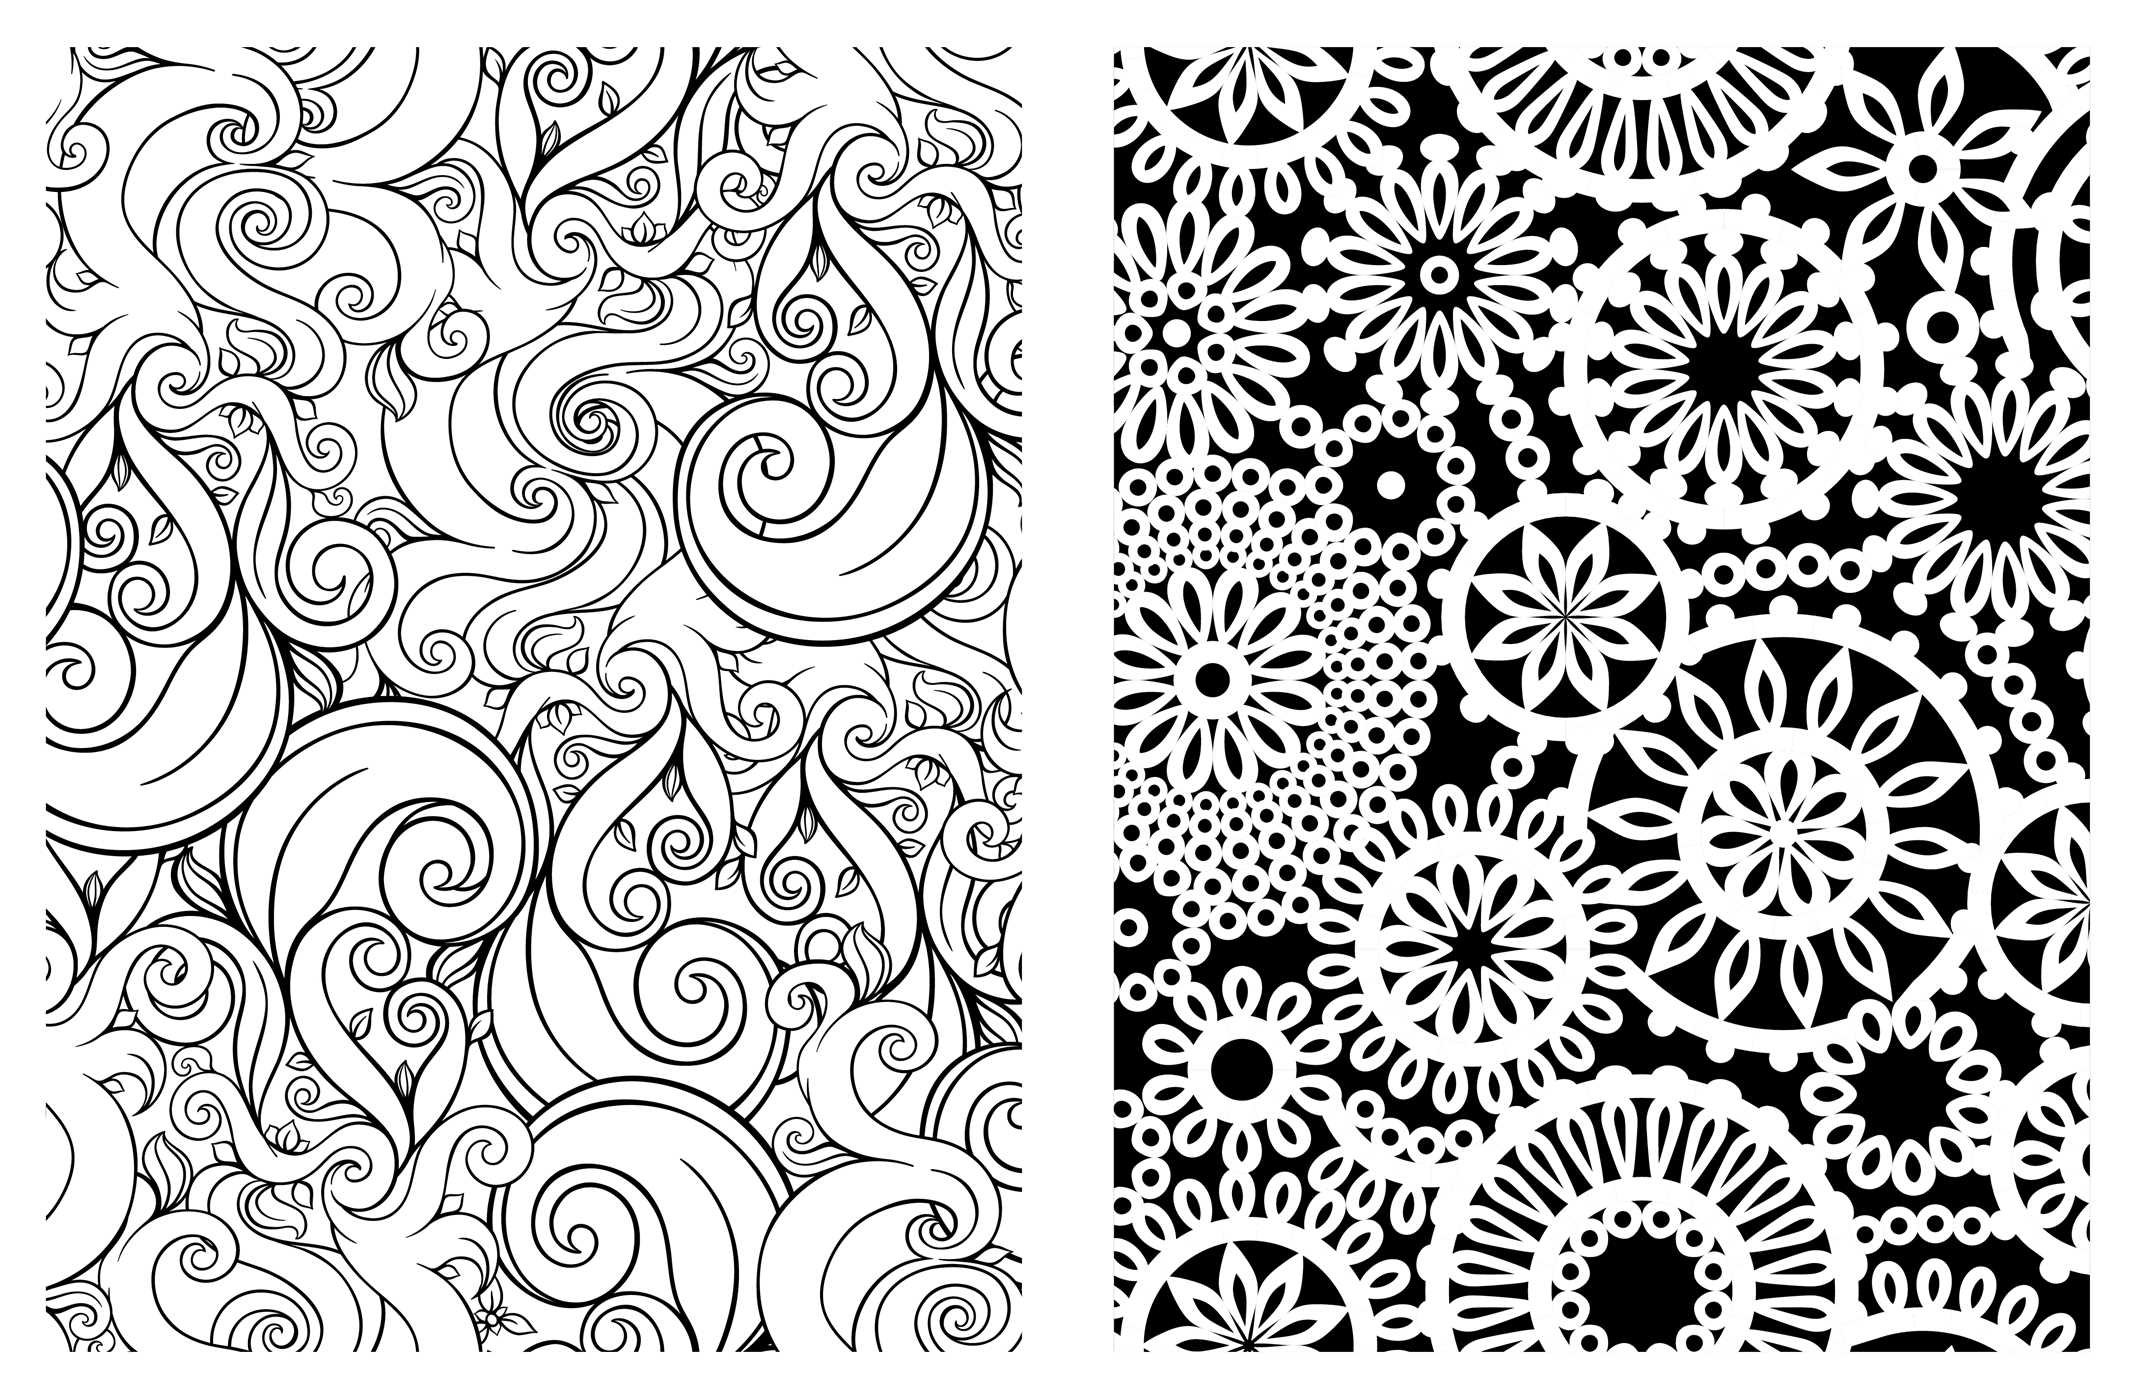 Amazon.com: Posh Adult Coloring Book: Pretty Designs for Fun ...